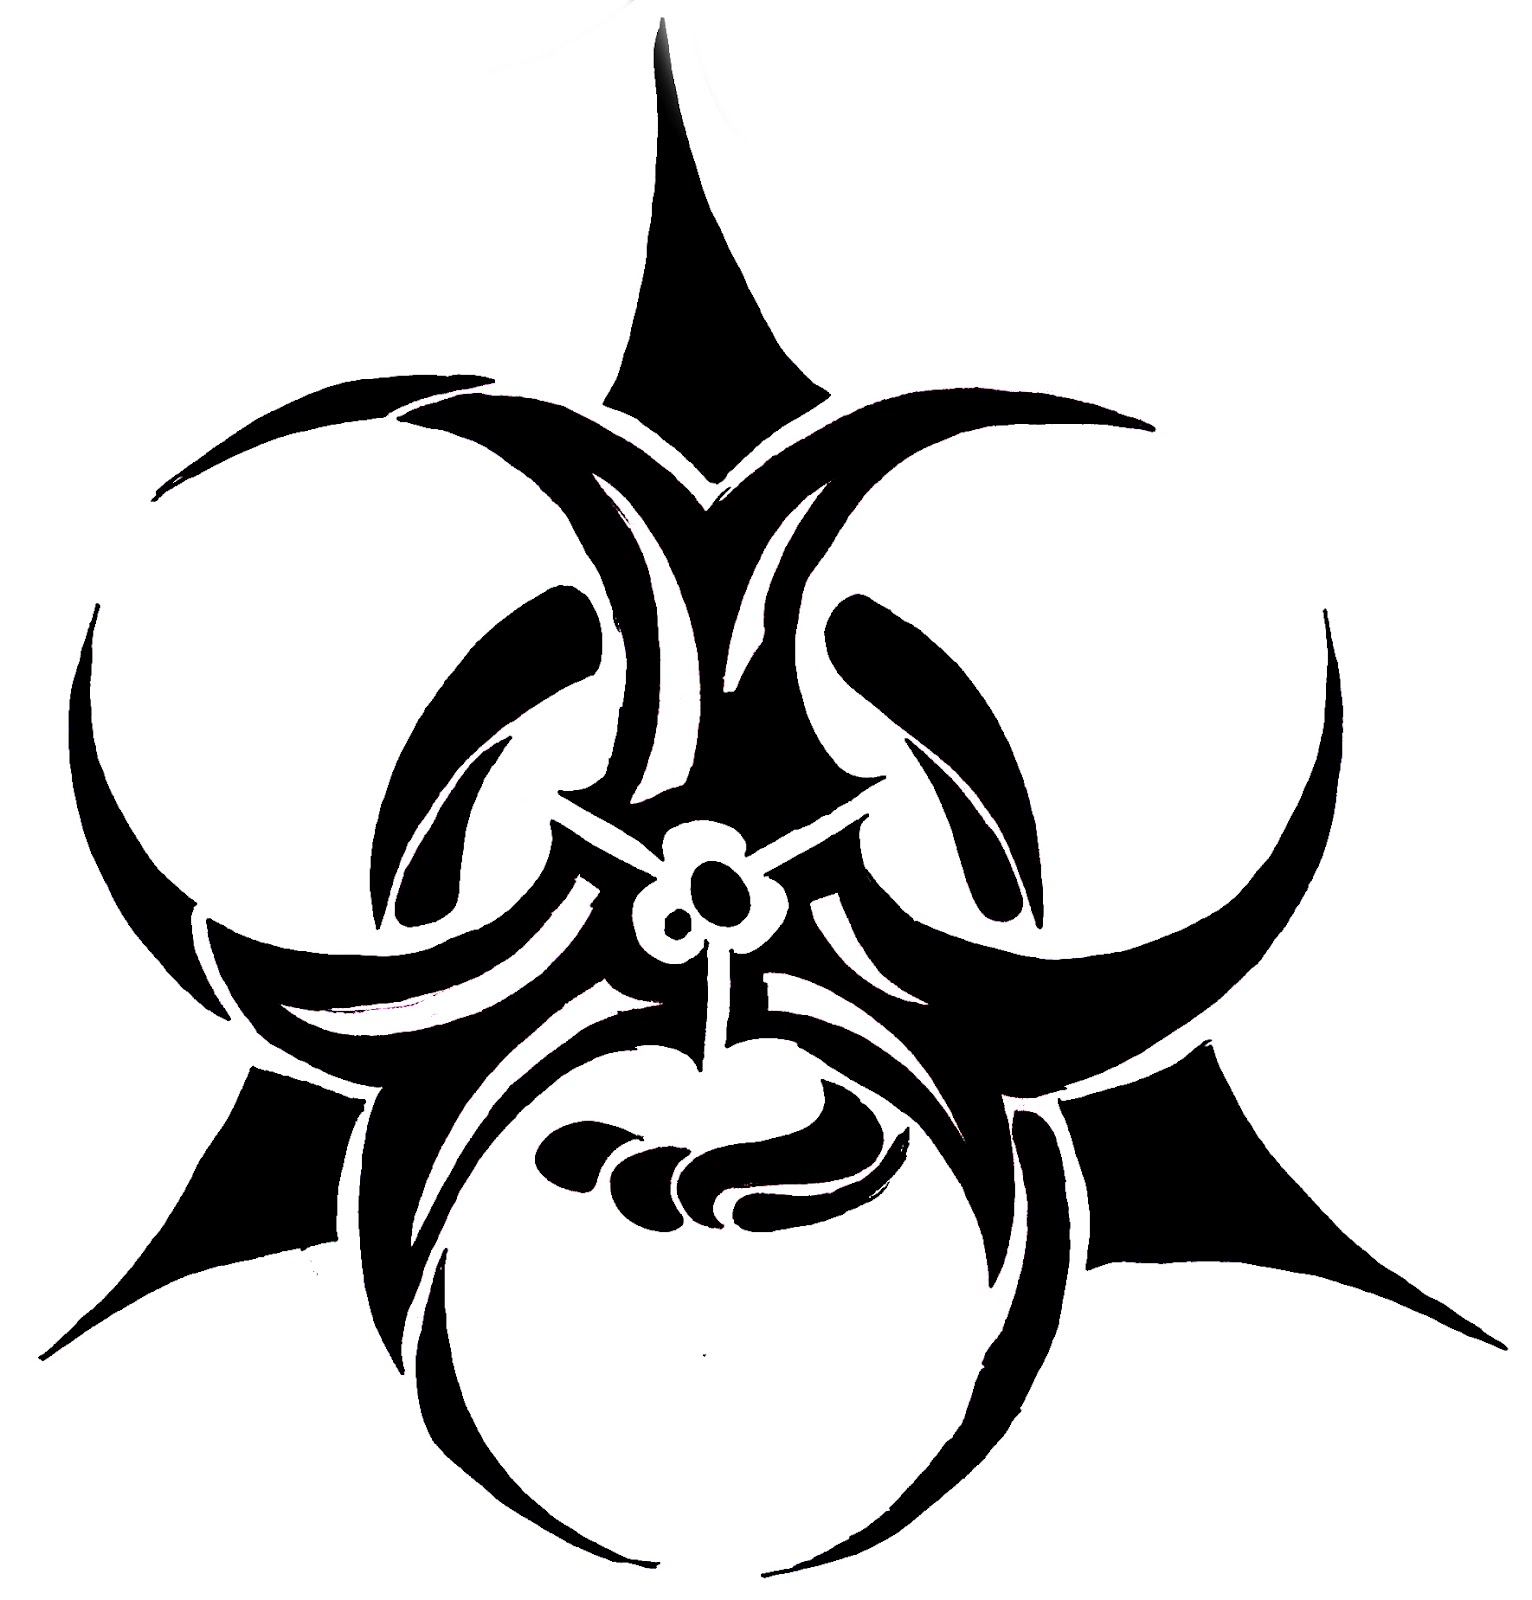 Biohazard logo page 12 images clipart best clipart best for Tribal biohazard tattoo designs